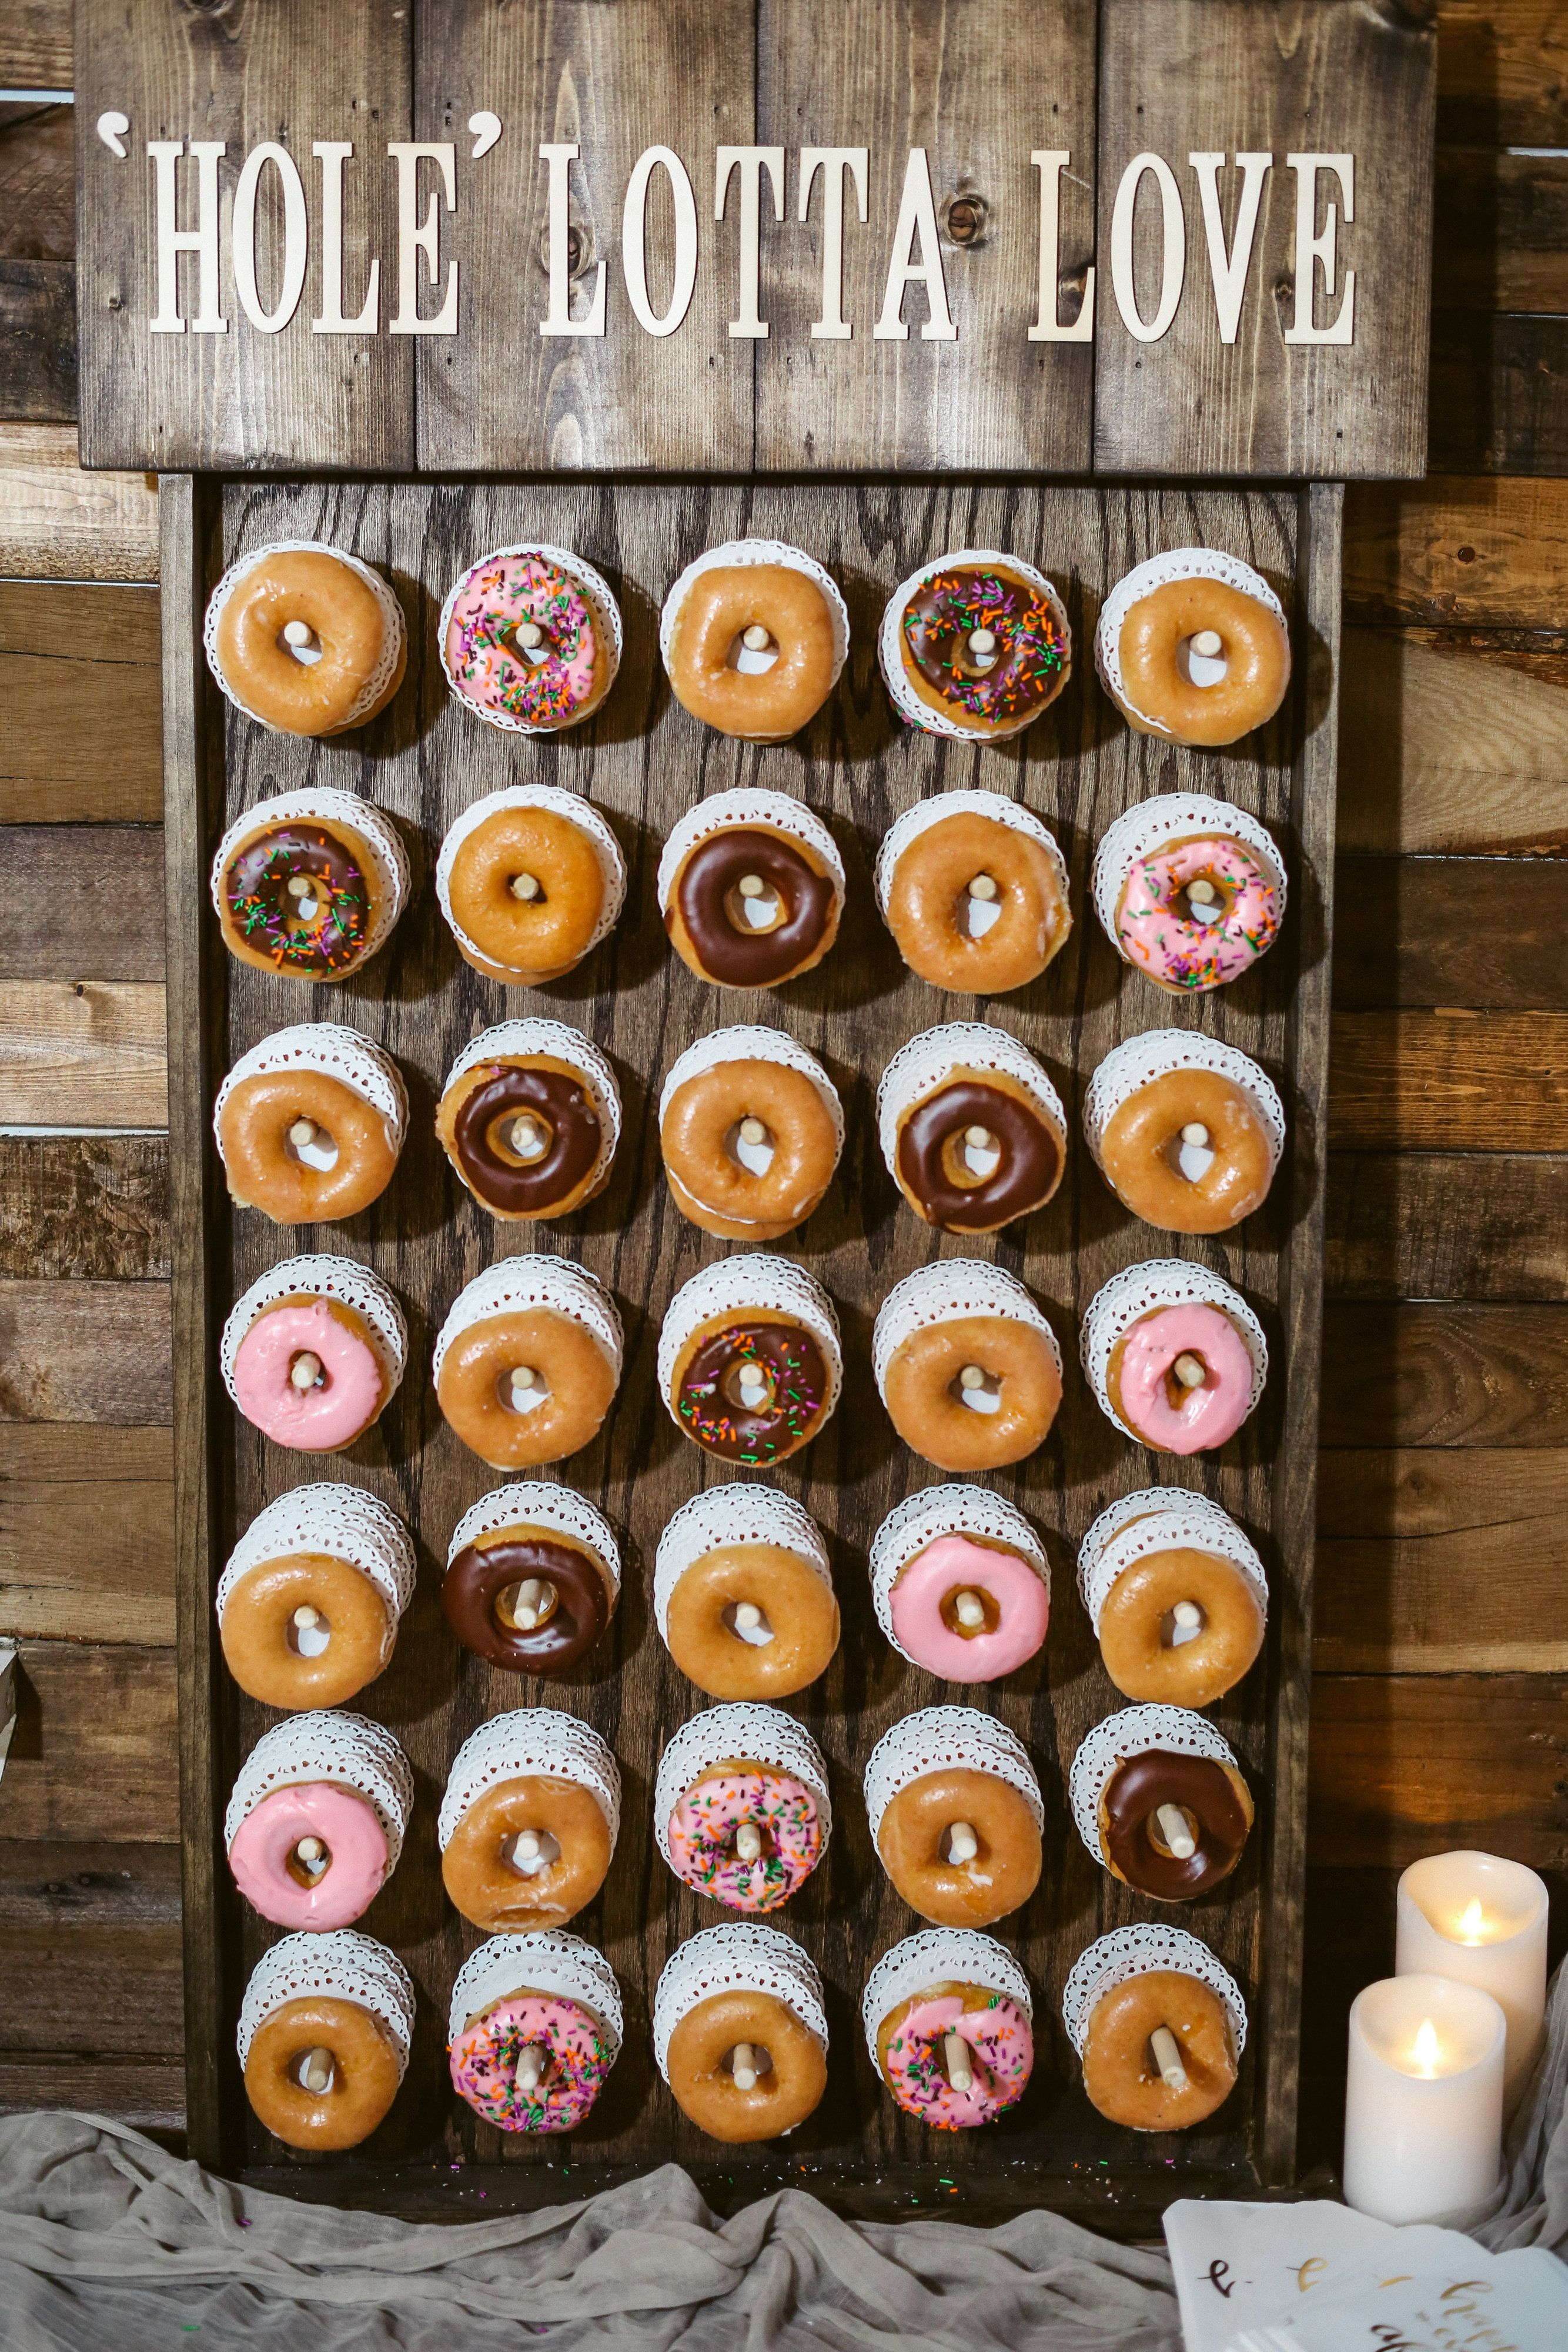 Hole Lotta Love For The Donut Wall At The Reception